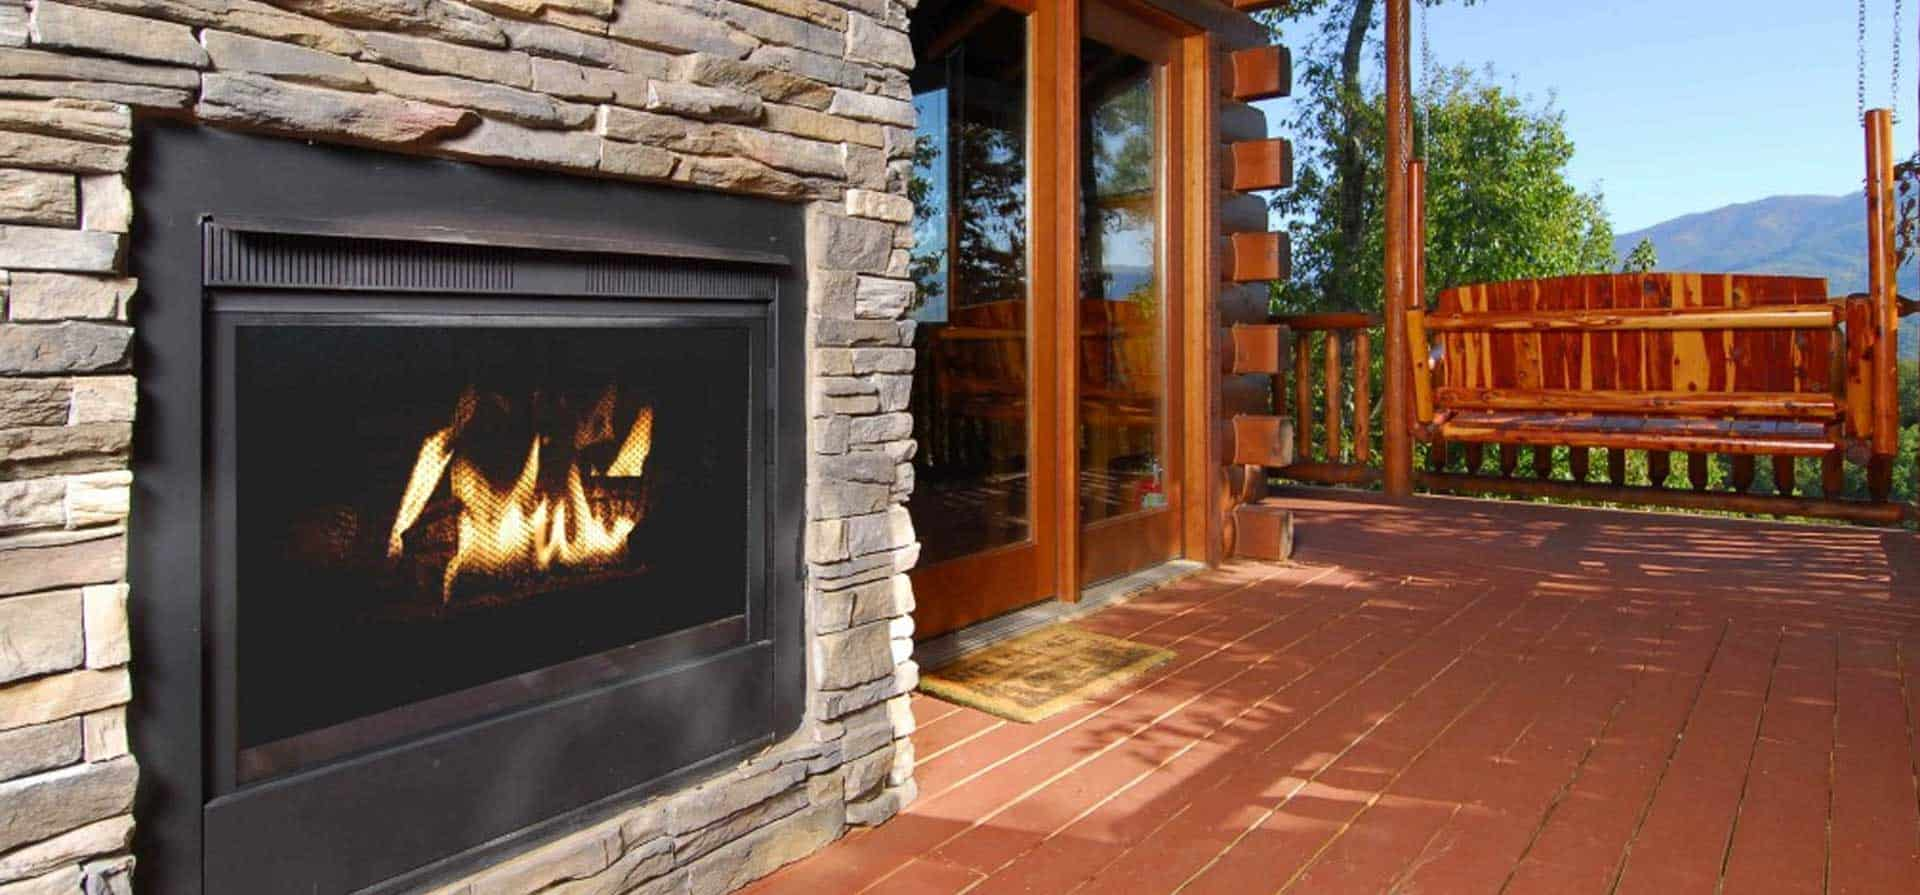 A beautiful fireplace and swing on the deck of one of Pigeon Forge Cabins